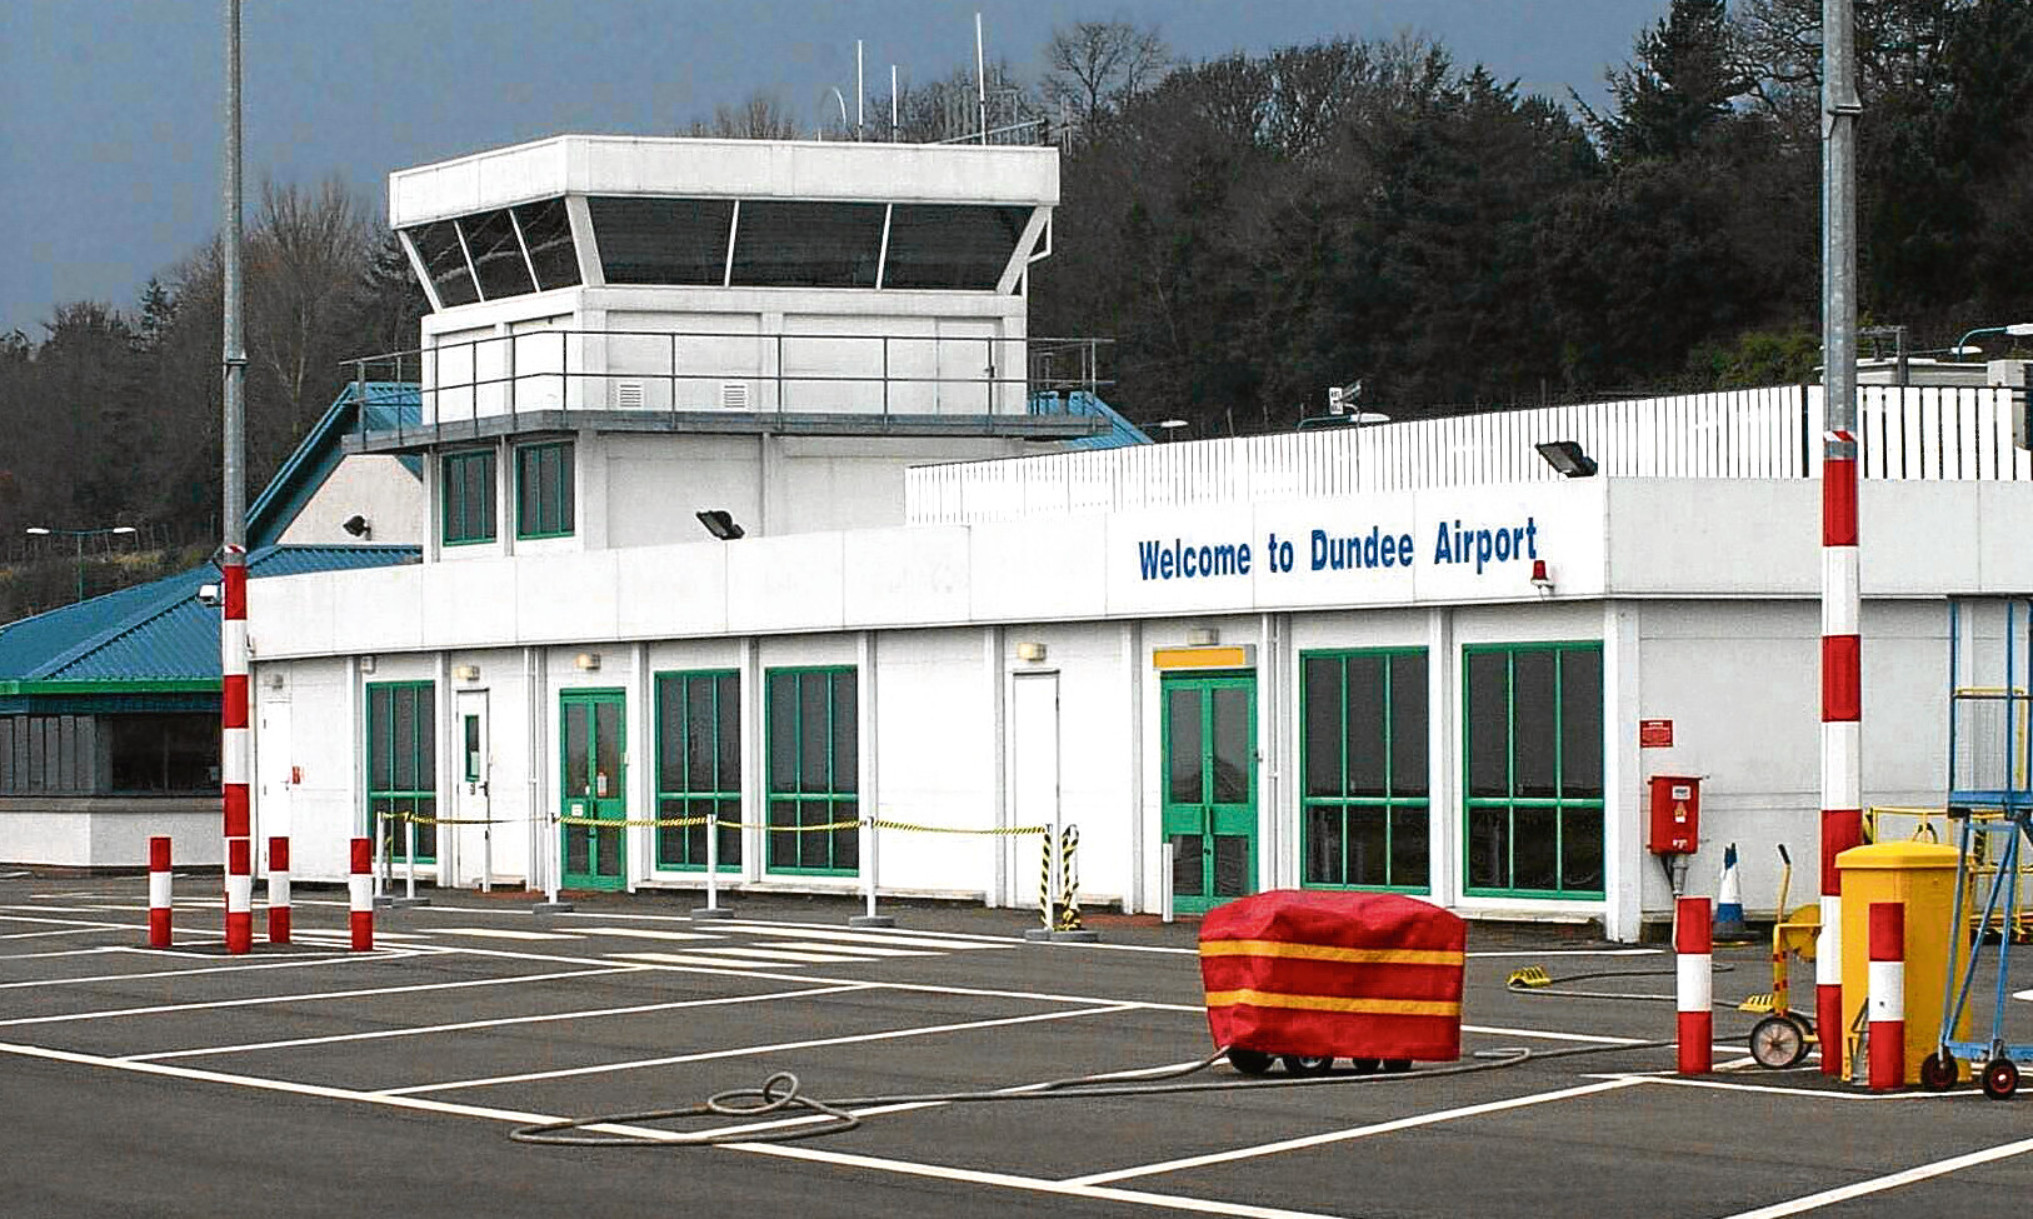 Dundee Airport.